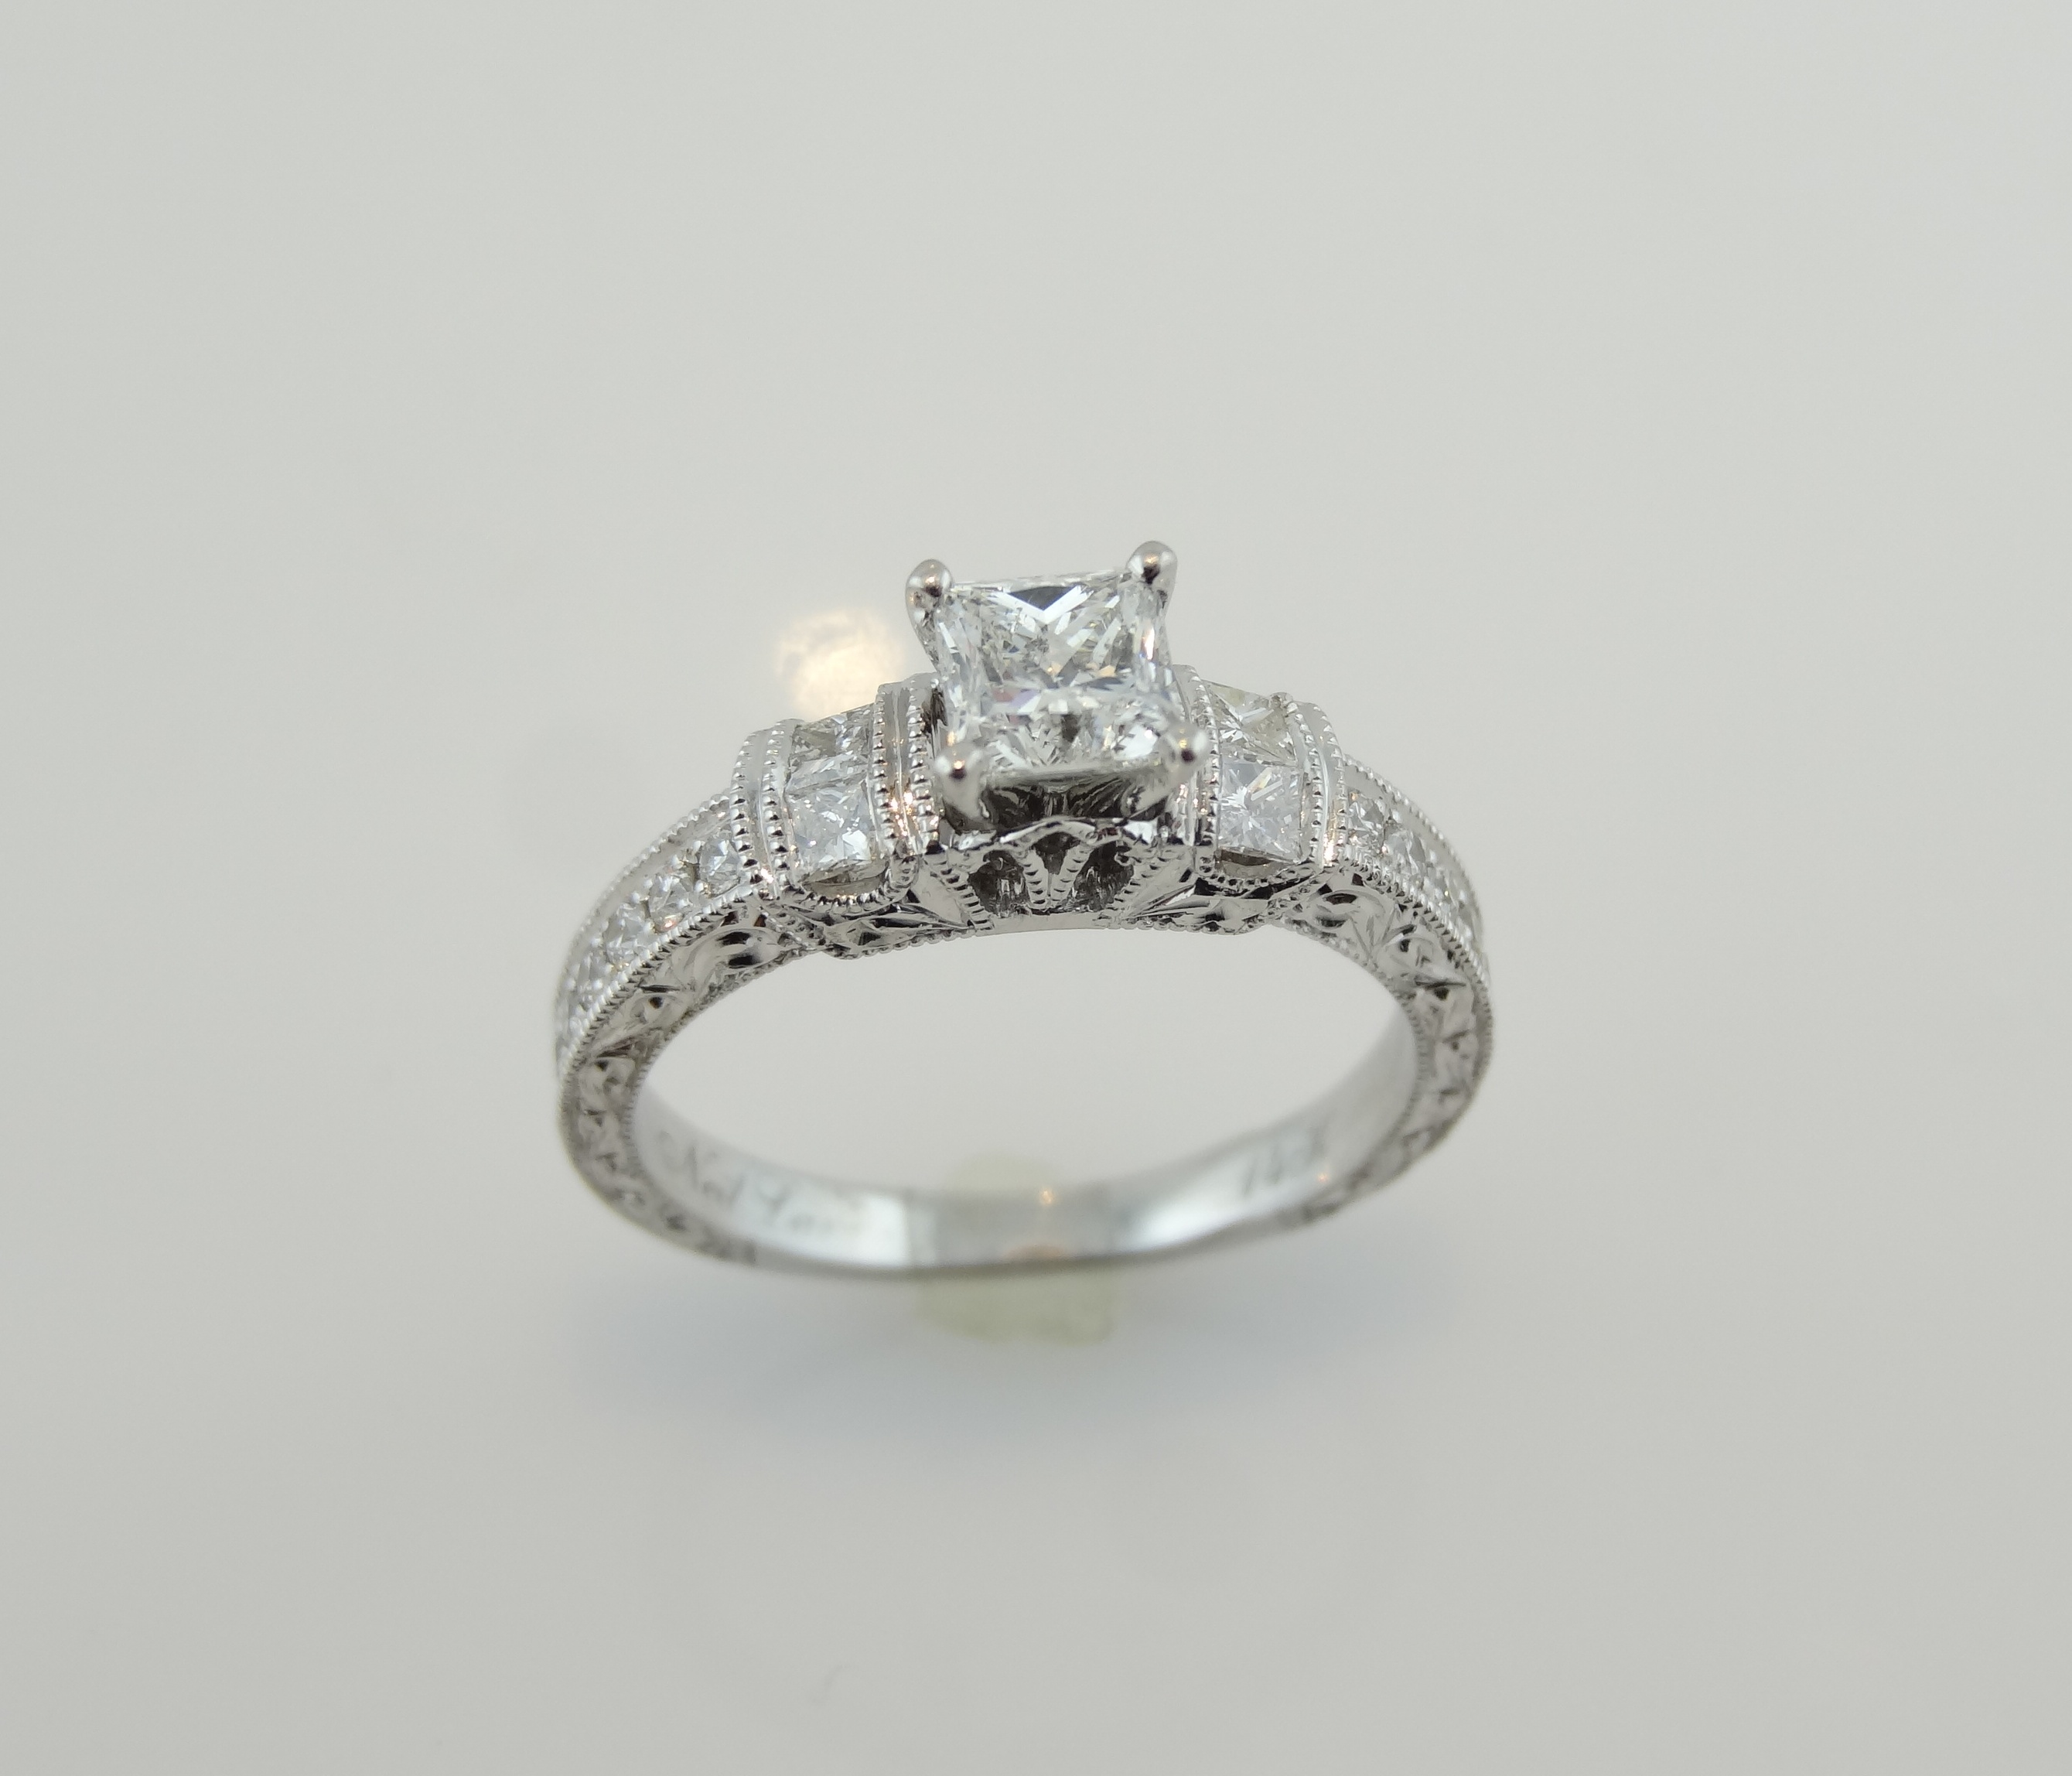 setting cut neil lane french cushion uk rings diamond halo engagement ring